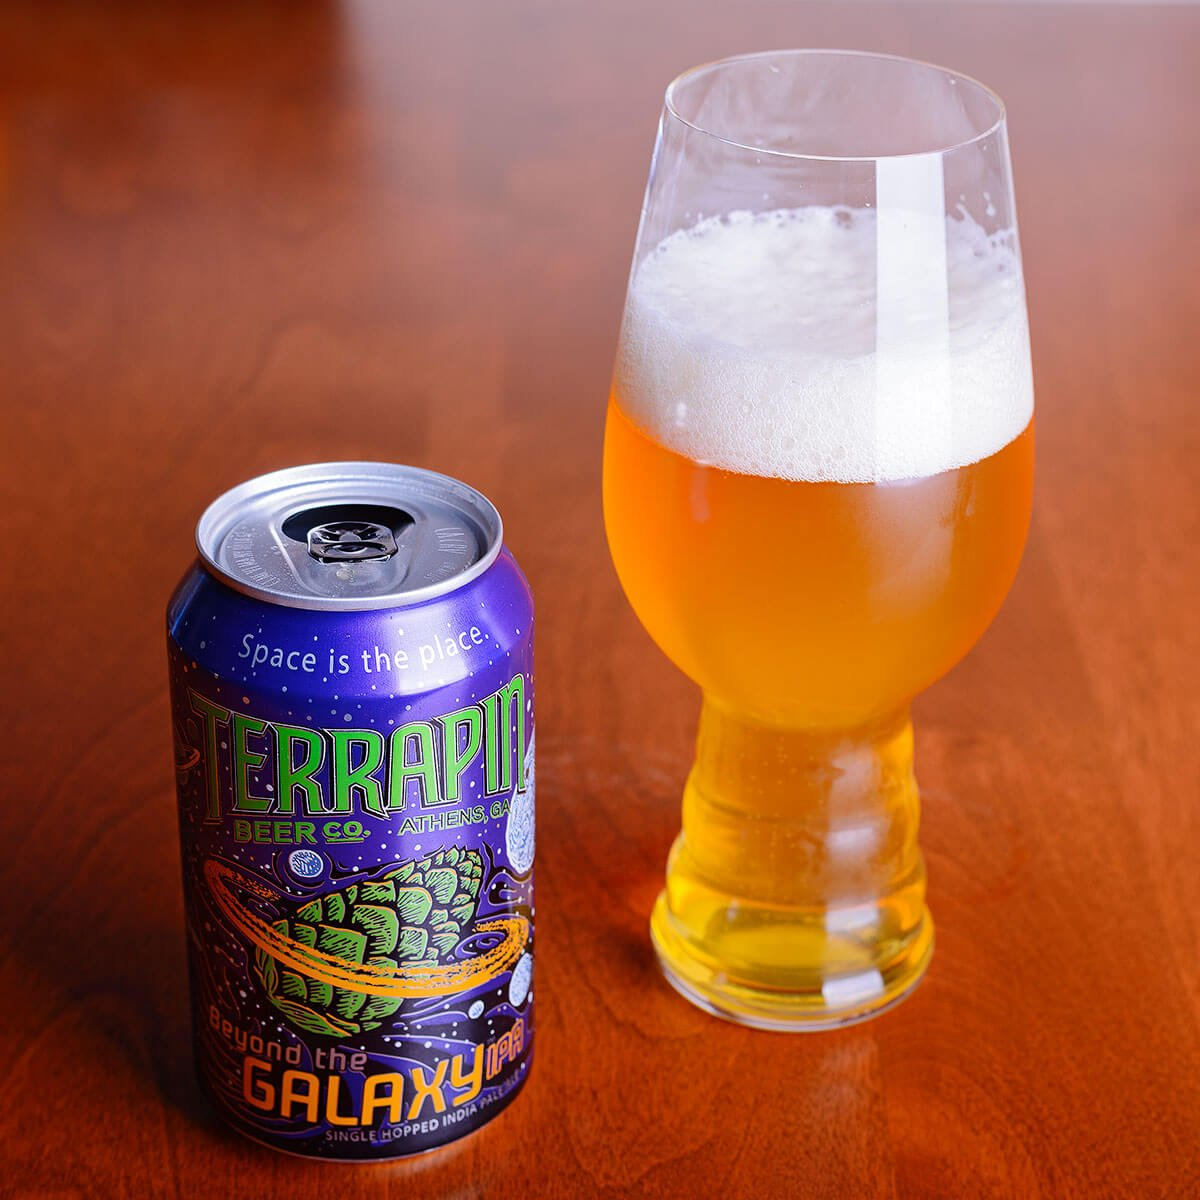 Beyond The Galaxy, an American IPA by Terrapin Beer Co.